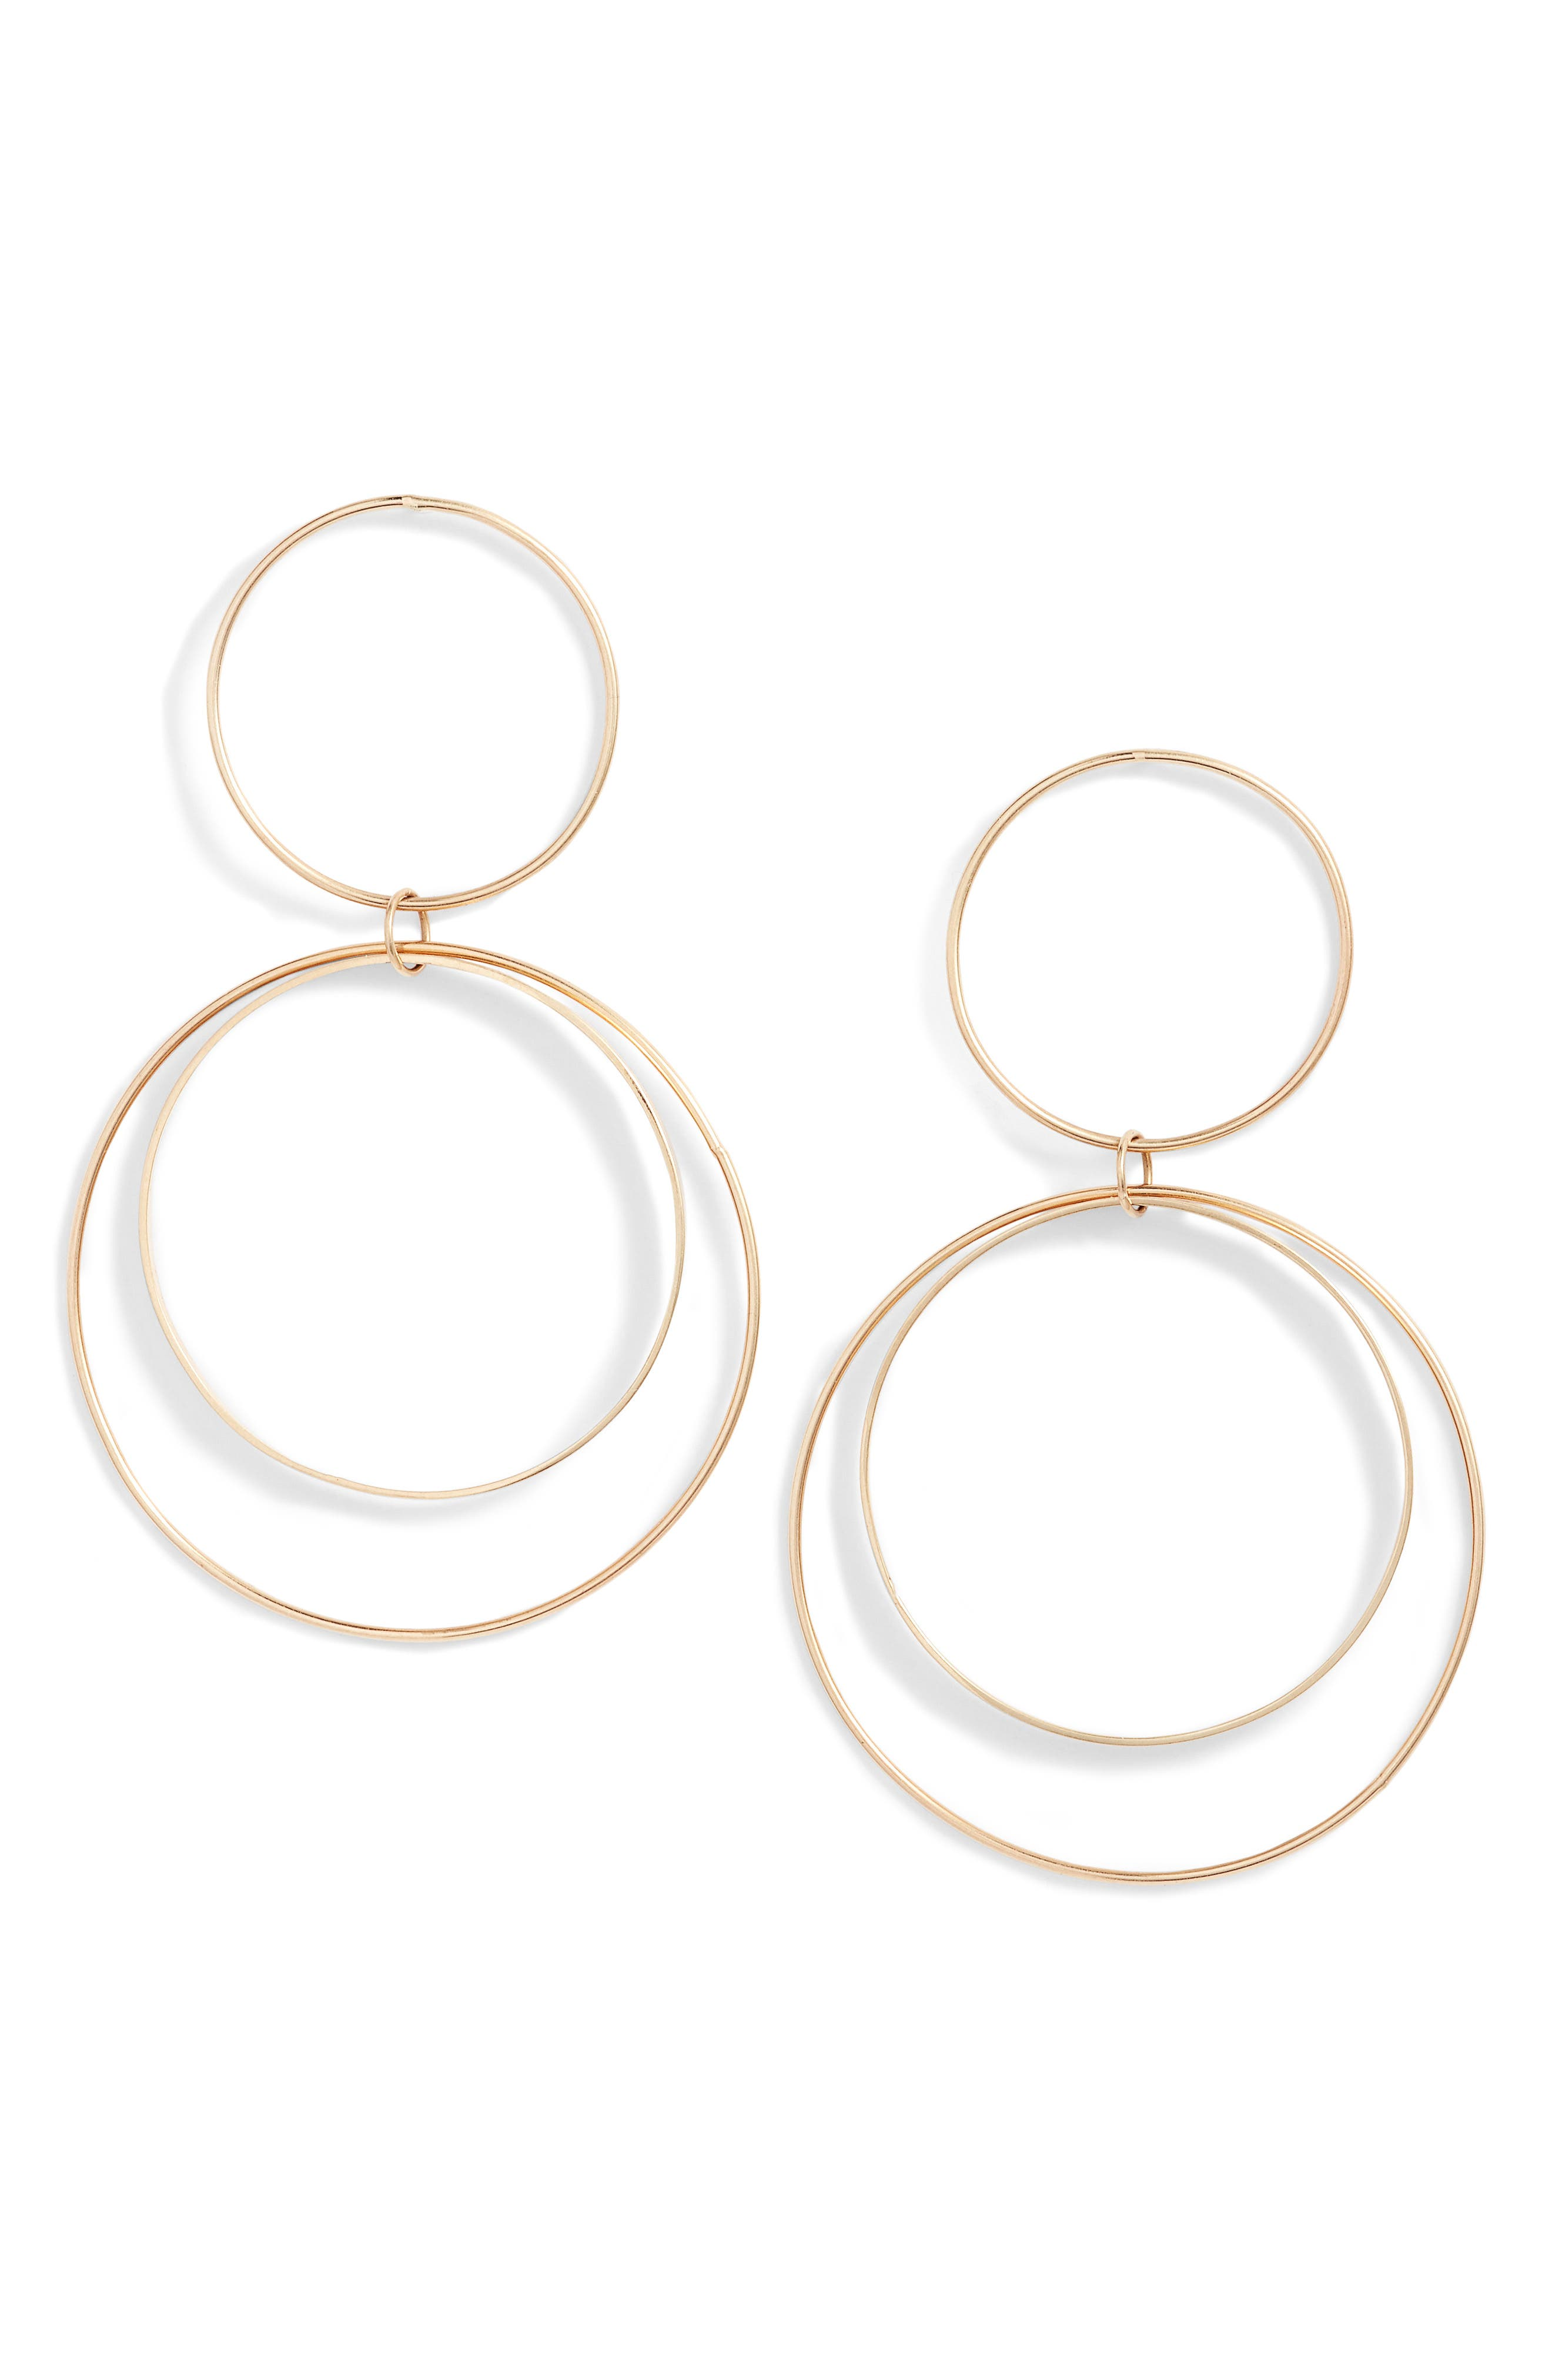 Two Tier Circle Drop Earrings,                         Main,                         color, YELLOW GOLD